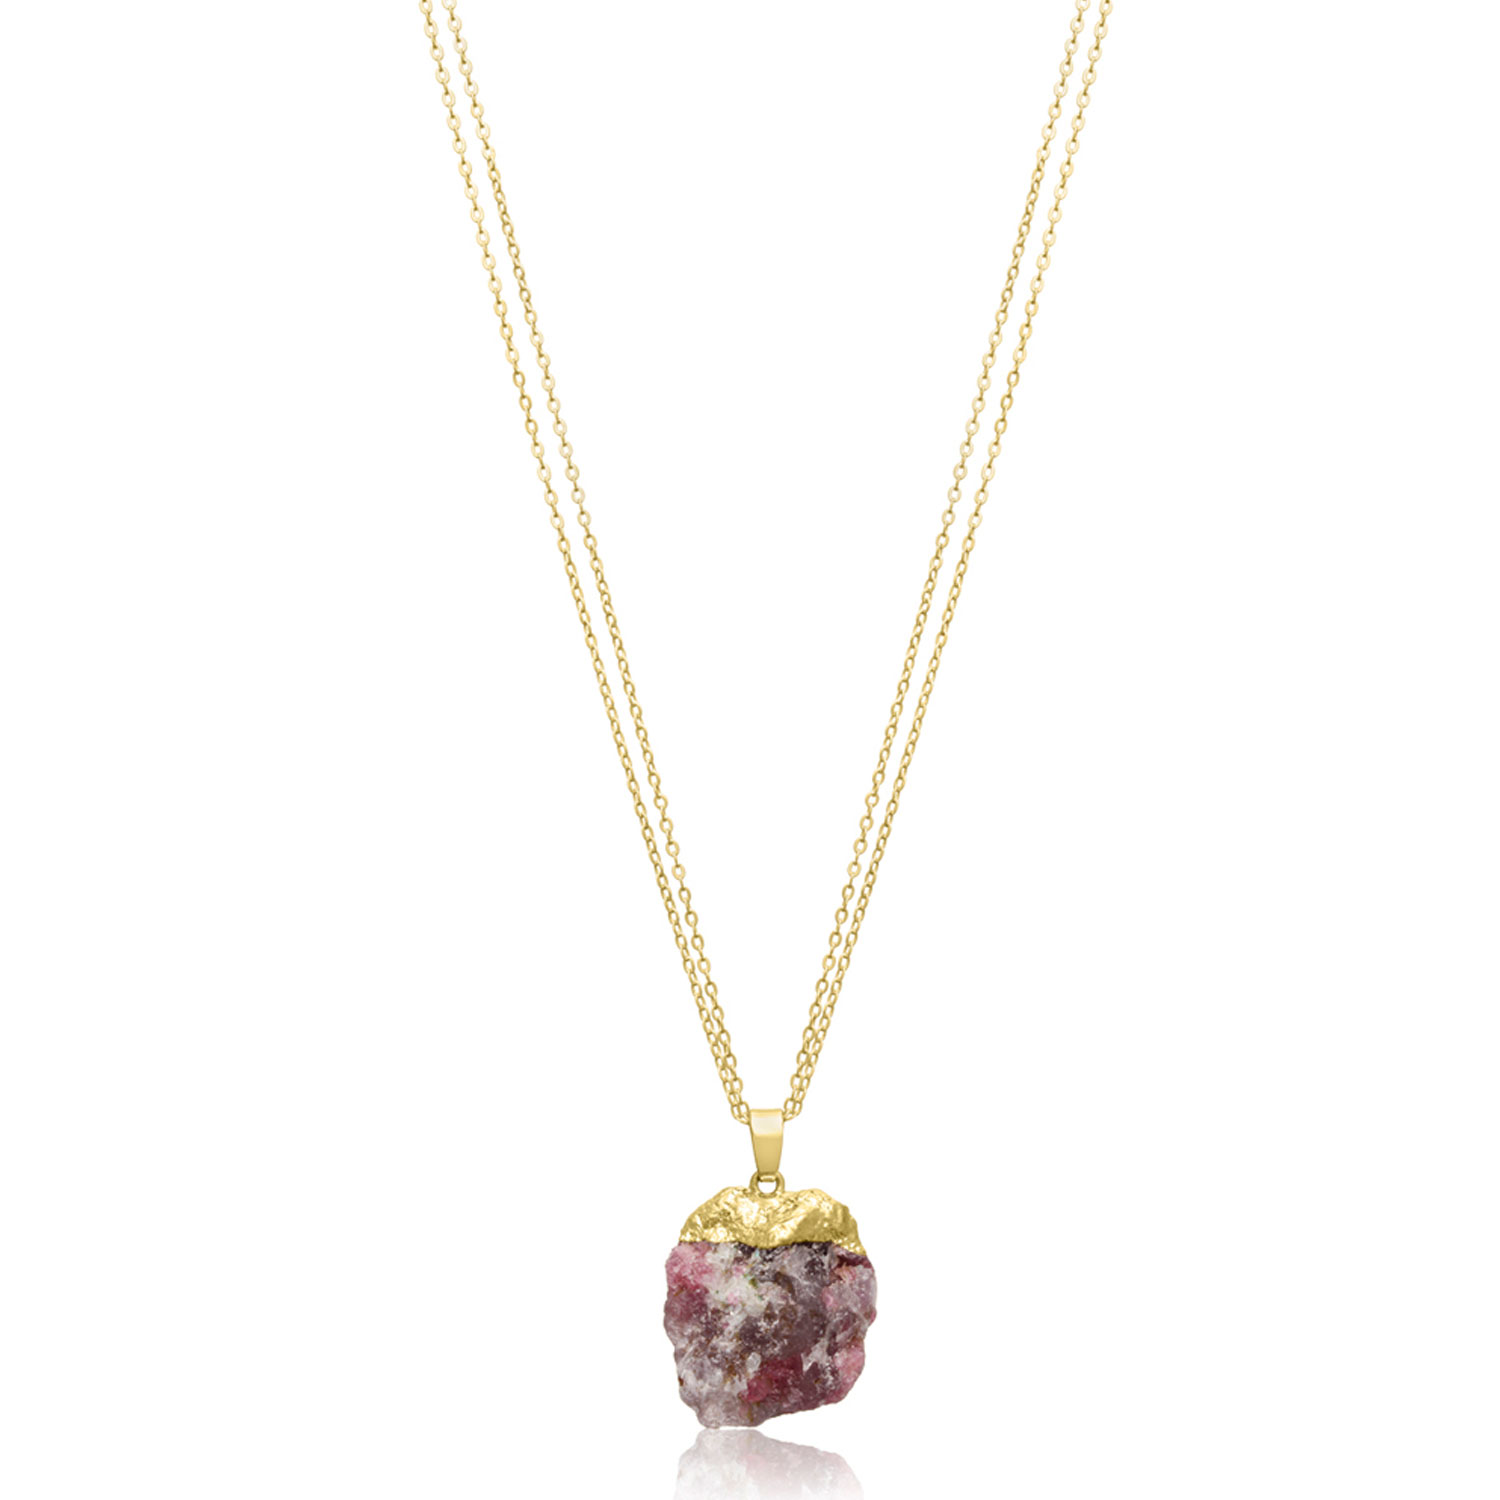 30 Carat Natural Multicolored Agate Necklace In 18 Karat Gold Overlay, 30 Inches